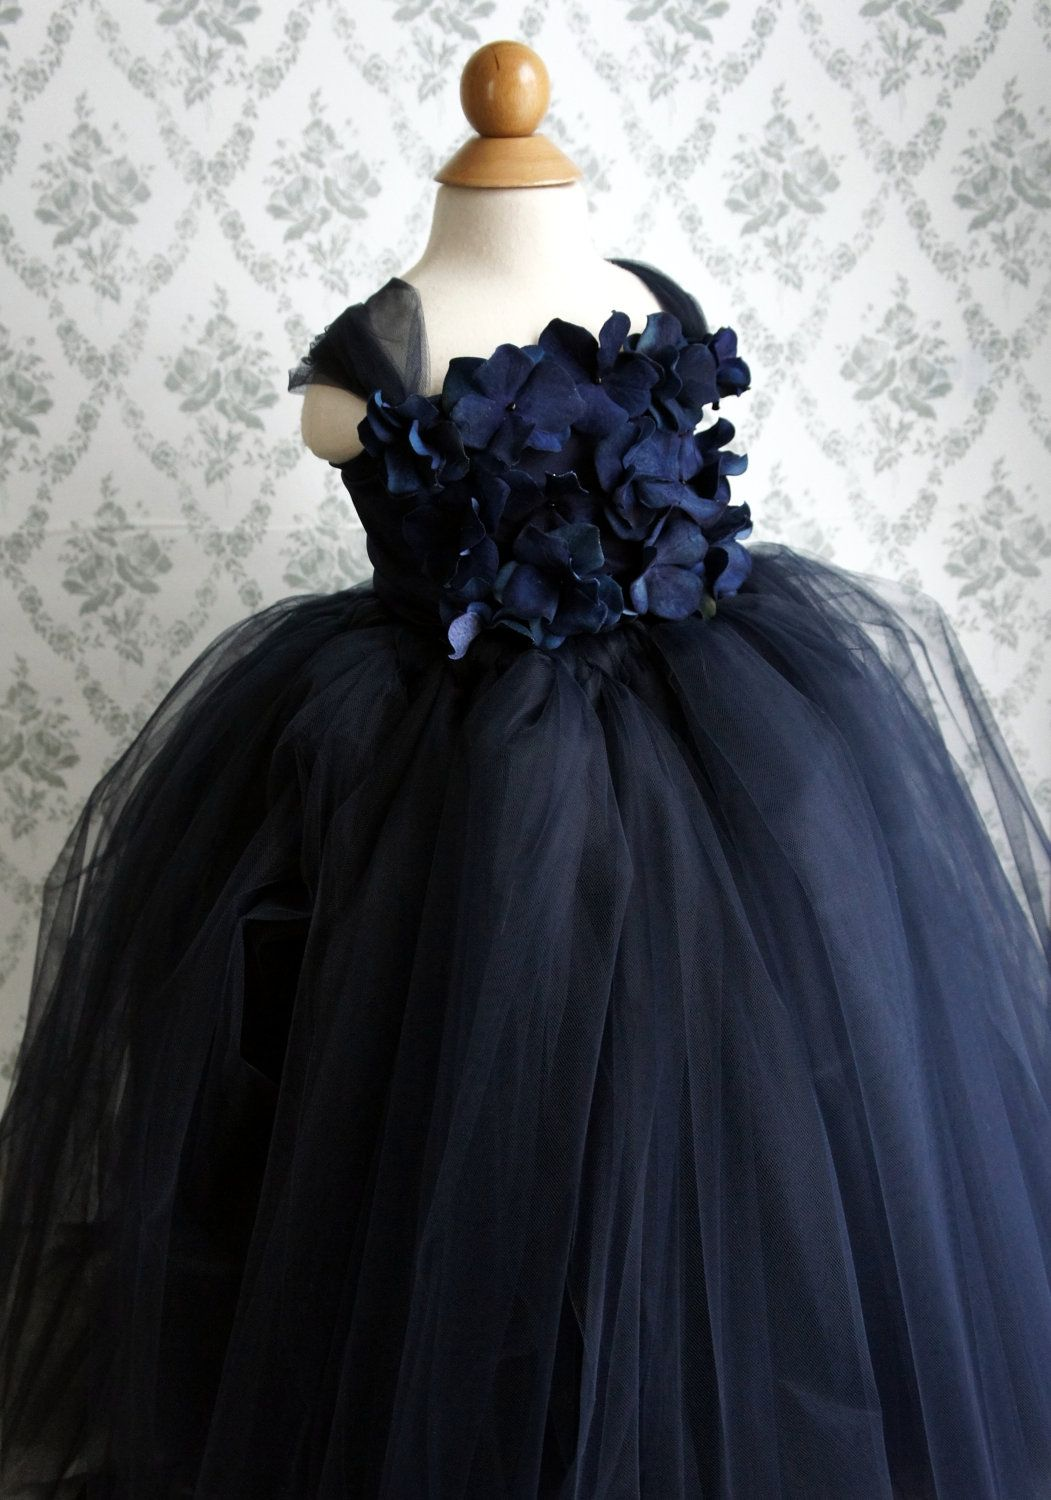 Flower girl dress navy blue tutu dress girls dress flower top flower girl dress navy blue tutu dress flower top baby tutu dress toddler tutu dress 7000 via etsy izmirmasajfo